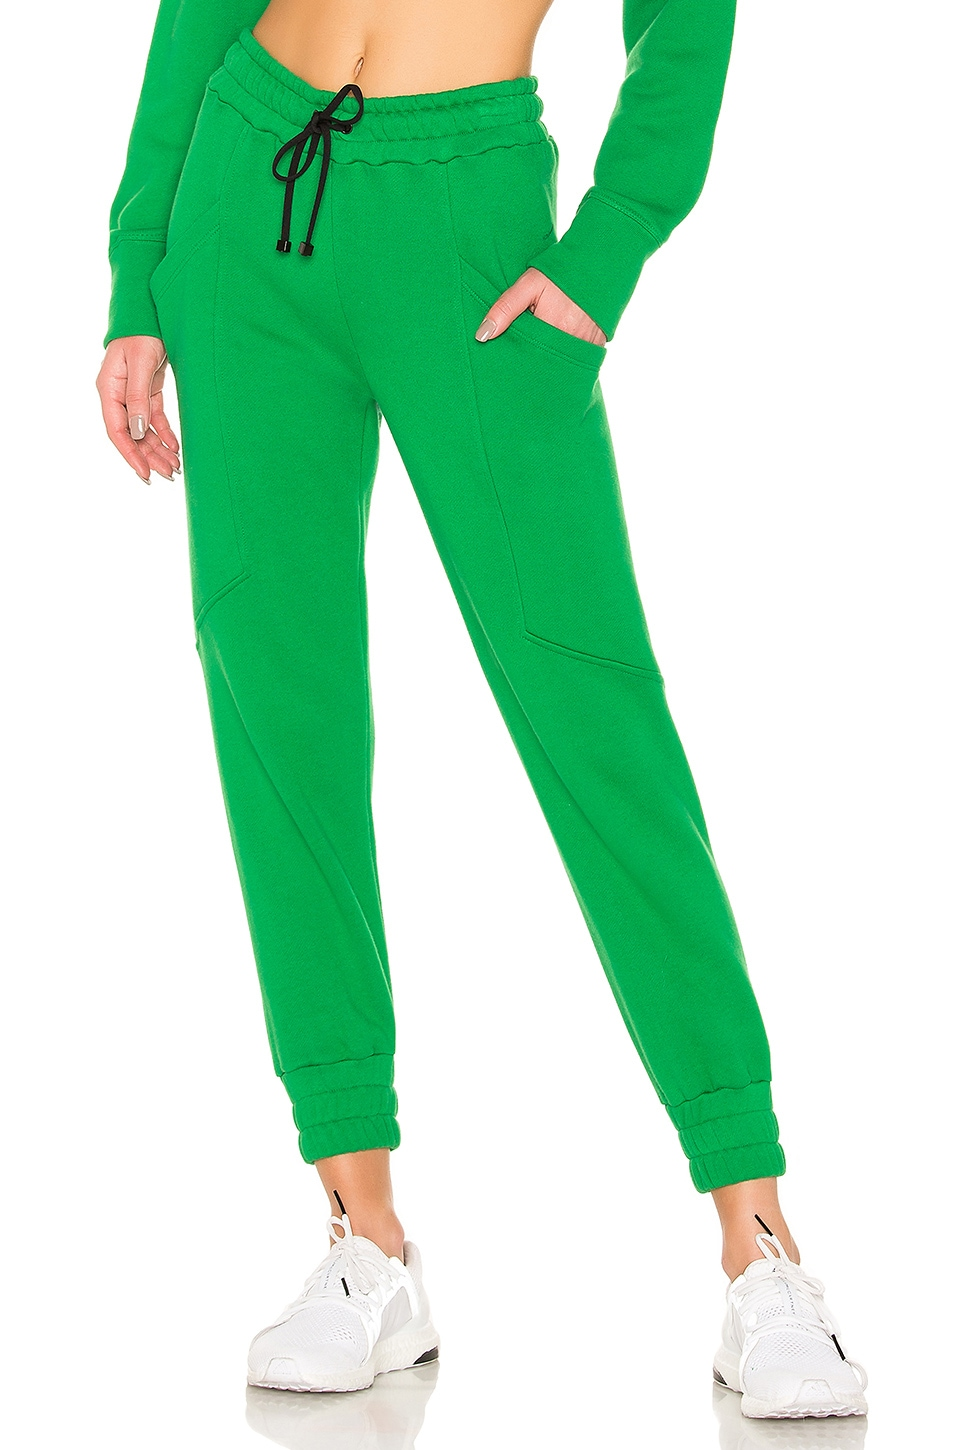 KORAL Bara Matte Sweatpants in Verde